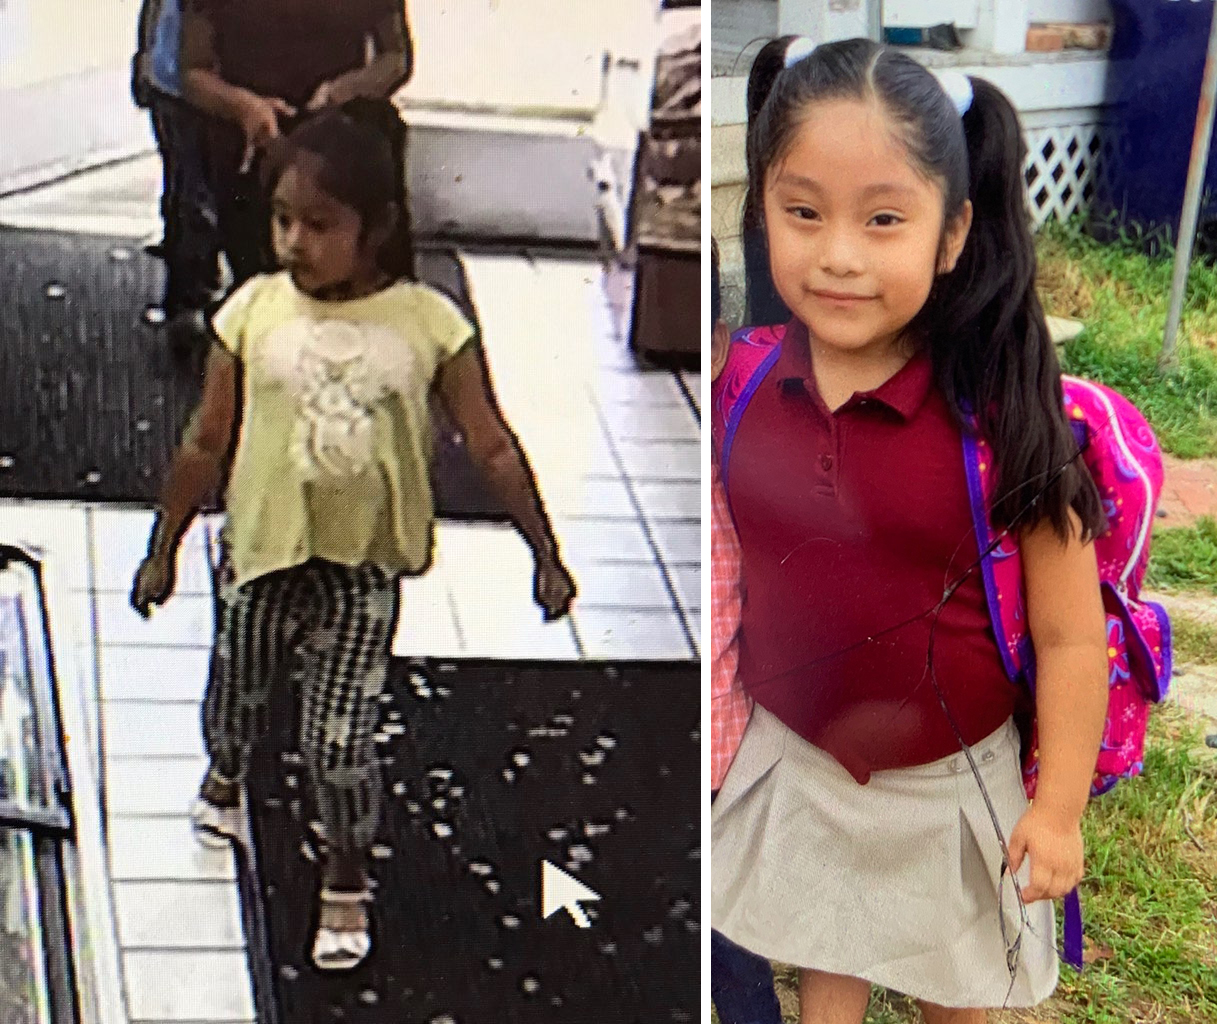 Amber Alert update: Parents at park where girl went missing say they feel safe, pray for her return